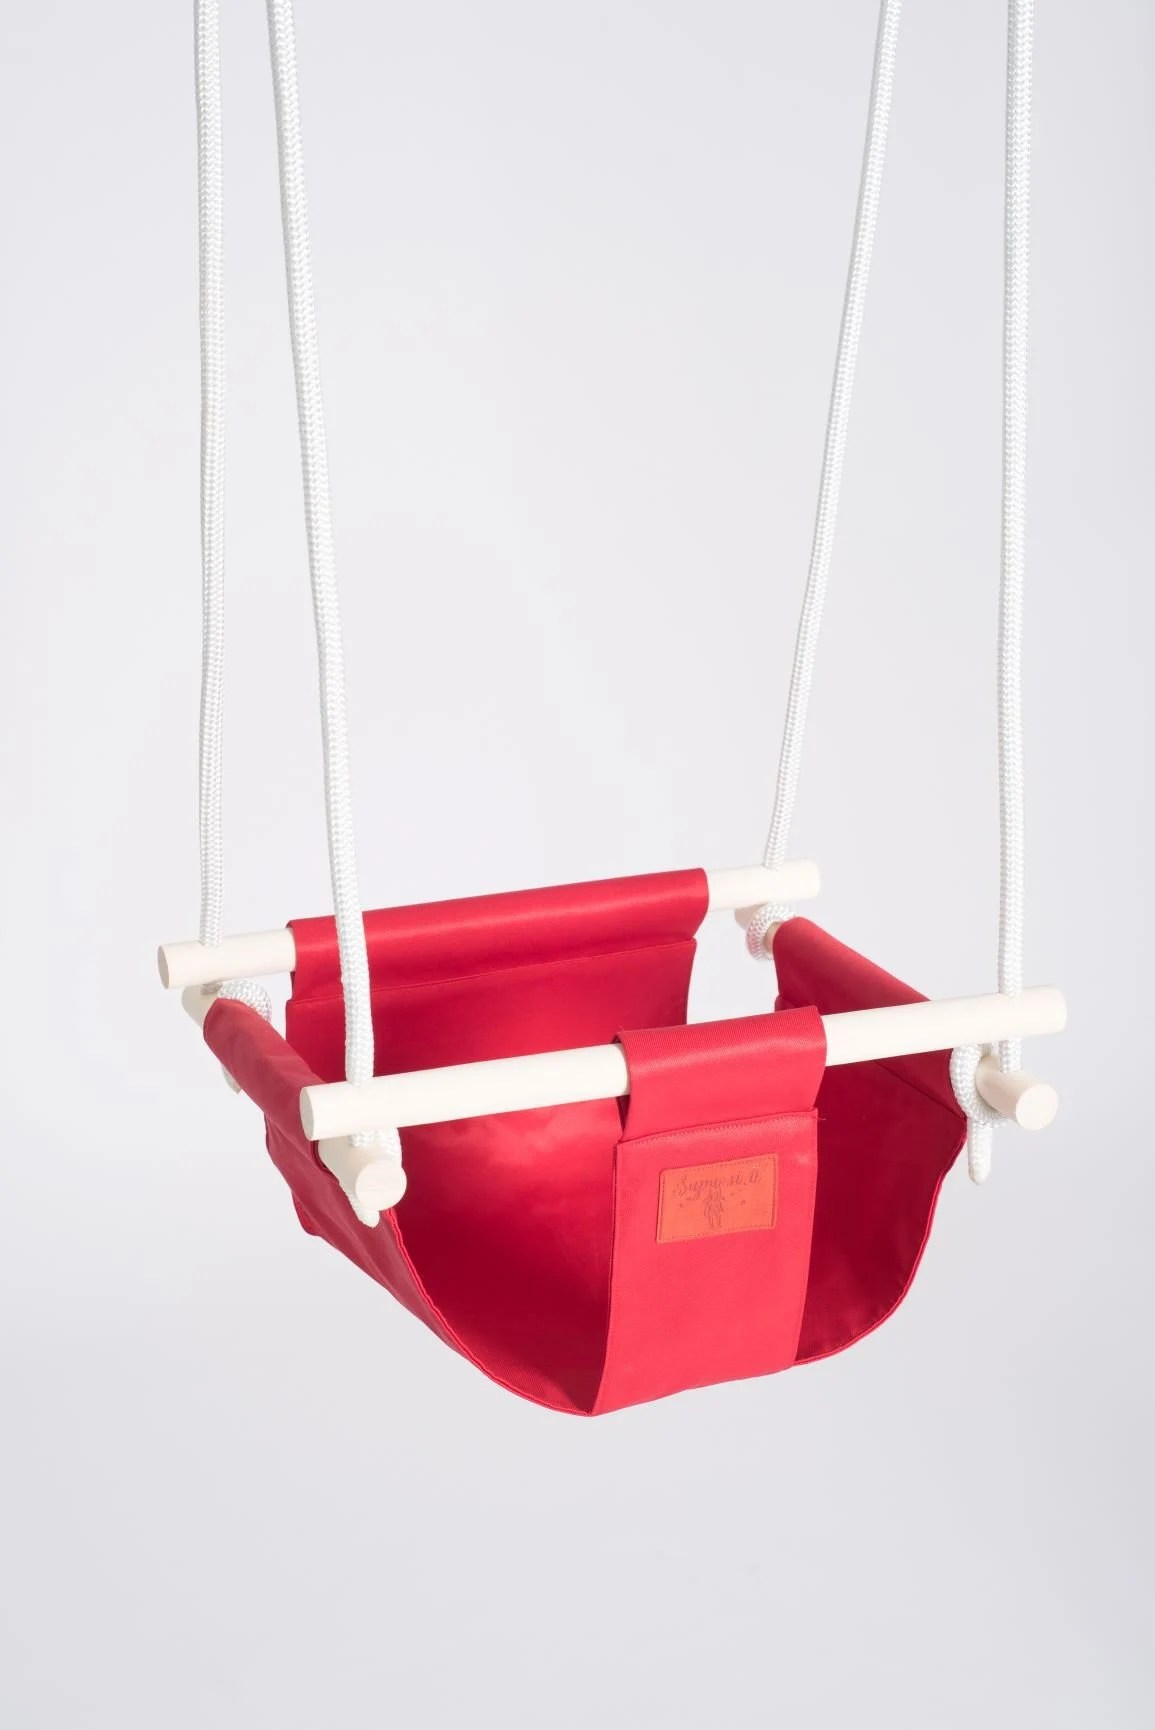 hanging chair for baby anti gravity toddler swing wooden red etsy image 0